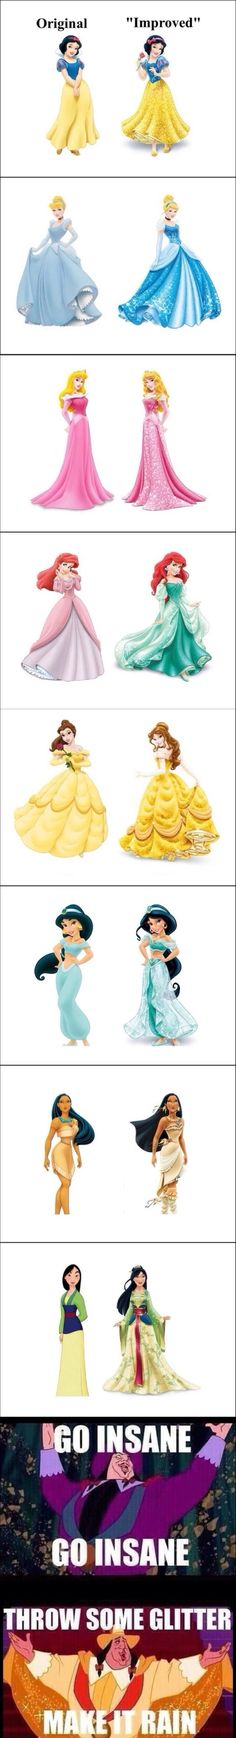 Disney Princesses - Well, that took an unexpected turn...